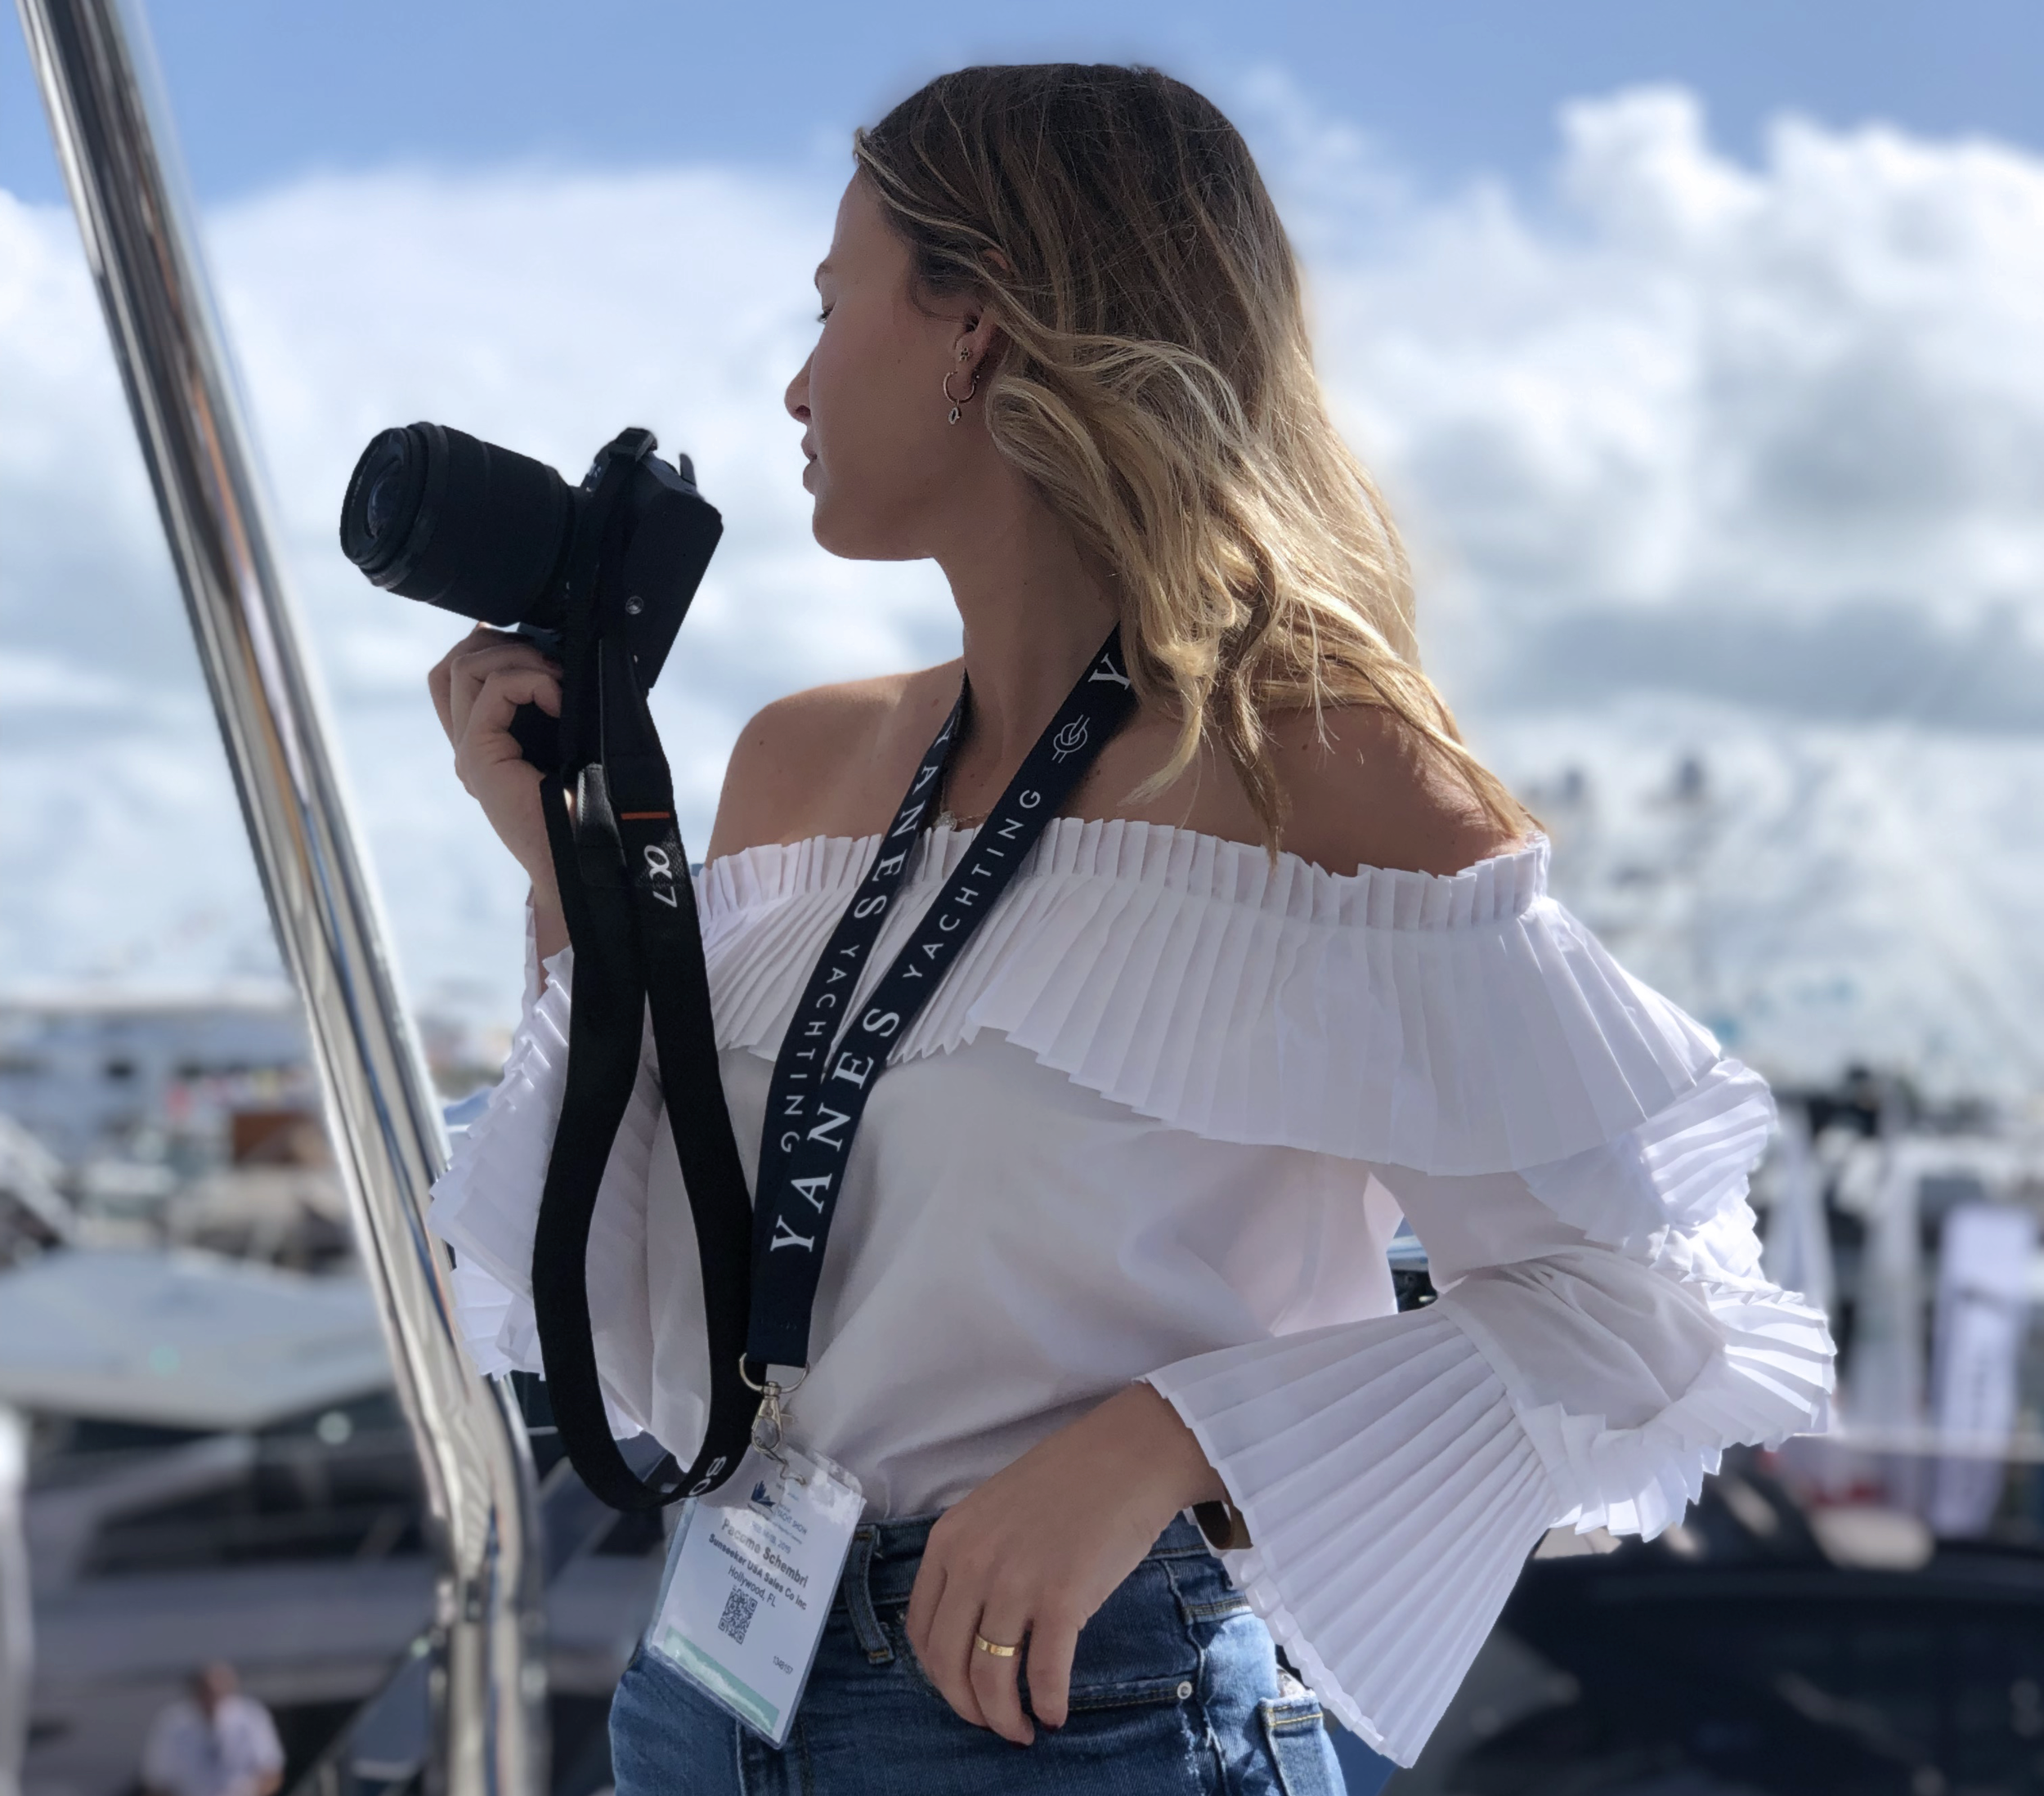 PROFESSIONAL PHOTOGRAPHY - Because a picture is worth a thousand words, Yanes Yachting offers the best quality HD photographs for your listings. To achieve the best shots, our team of photographers will collaborate to stage and light your listing.